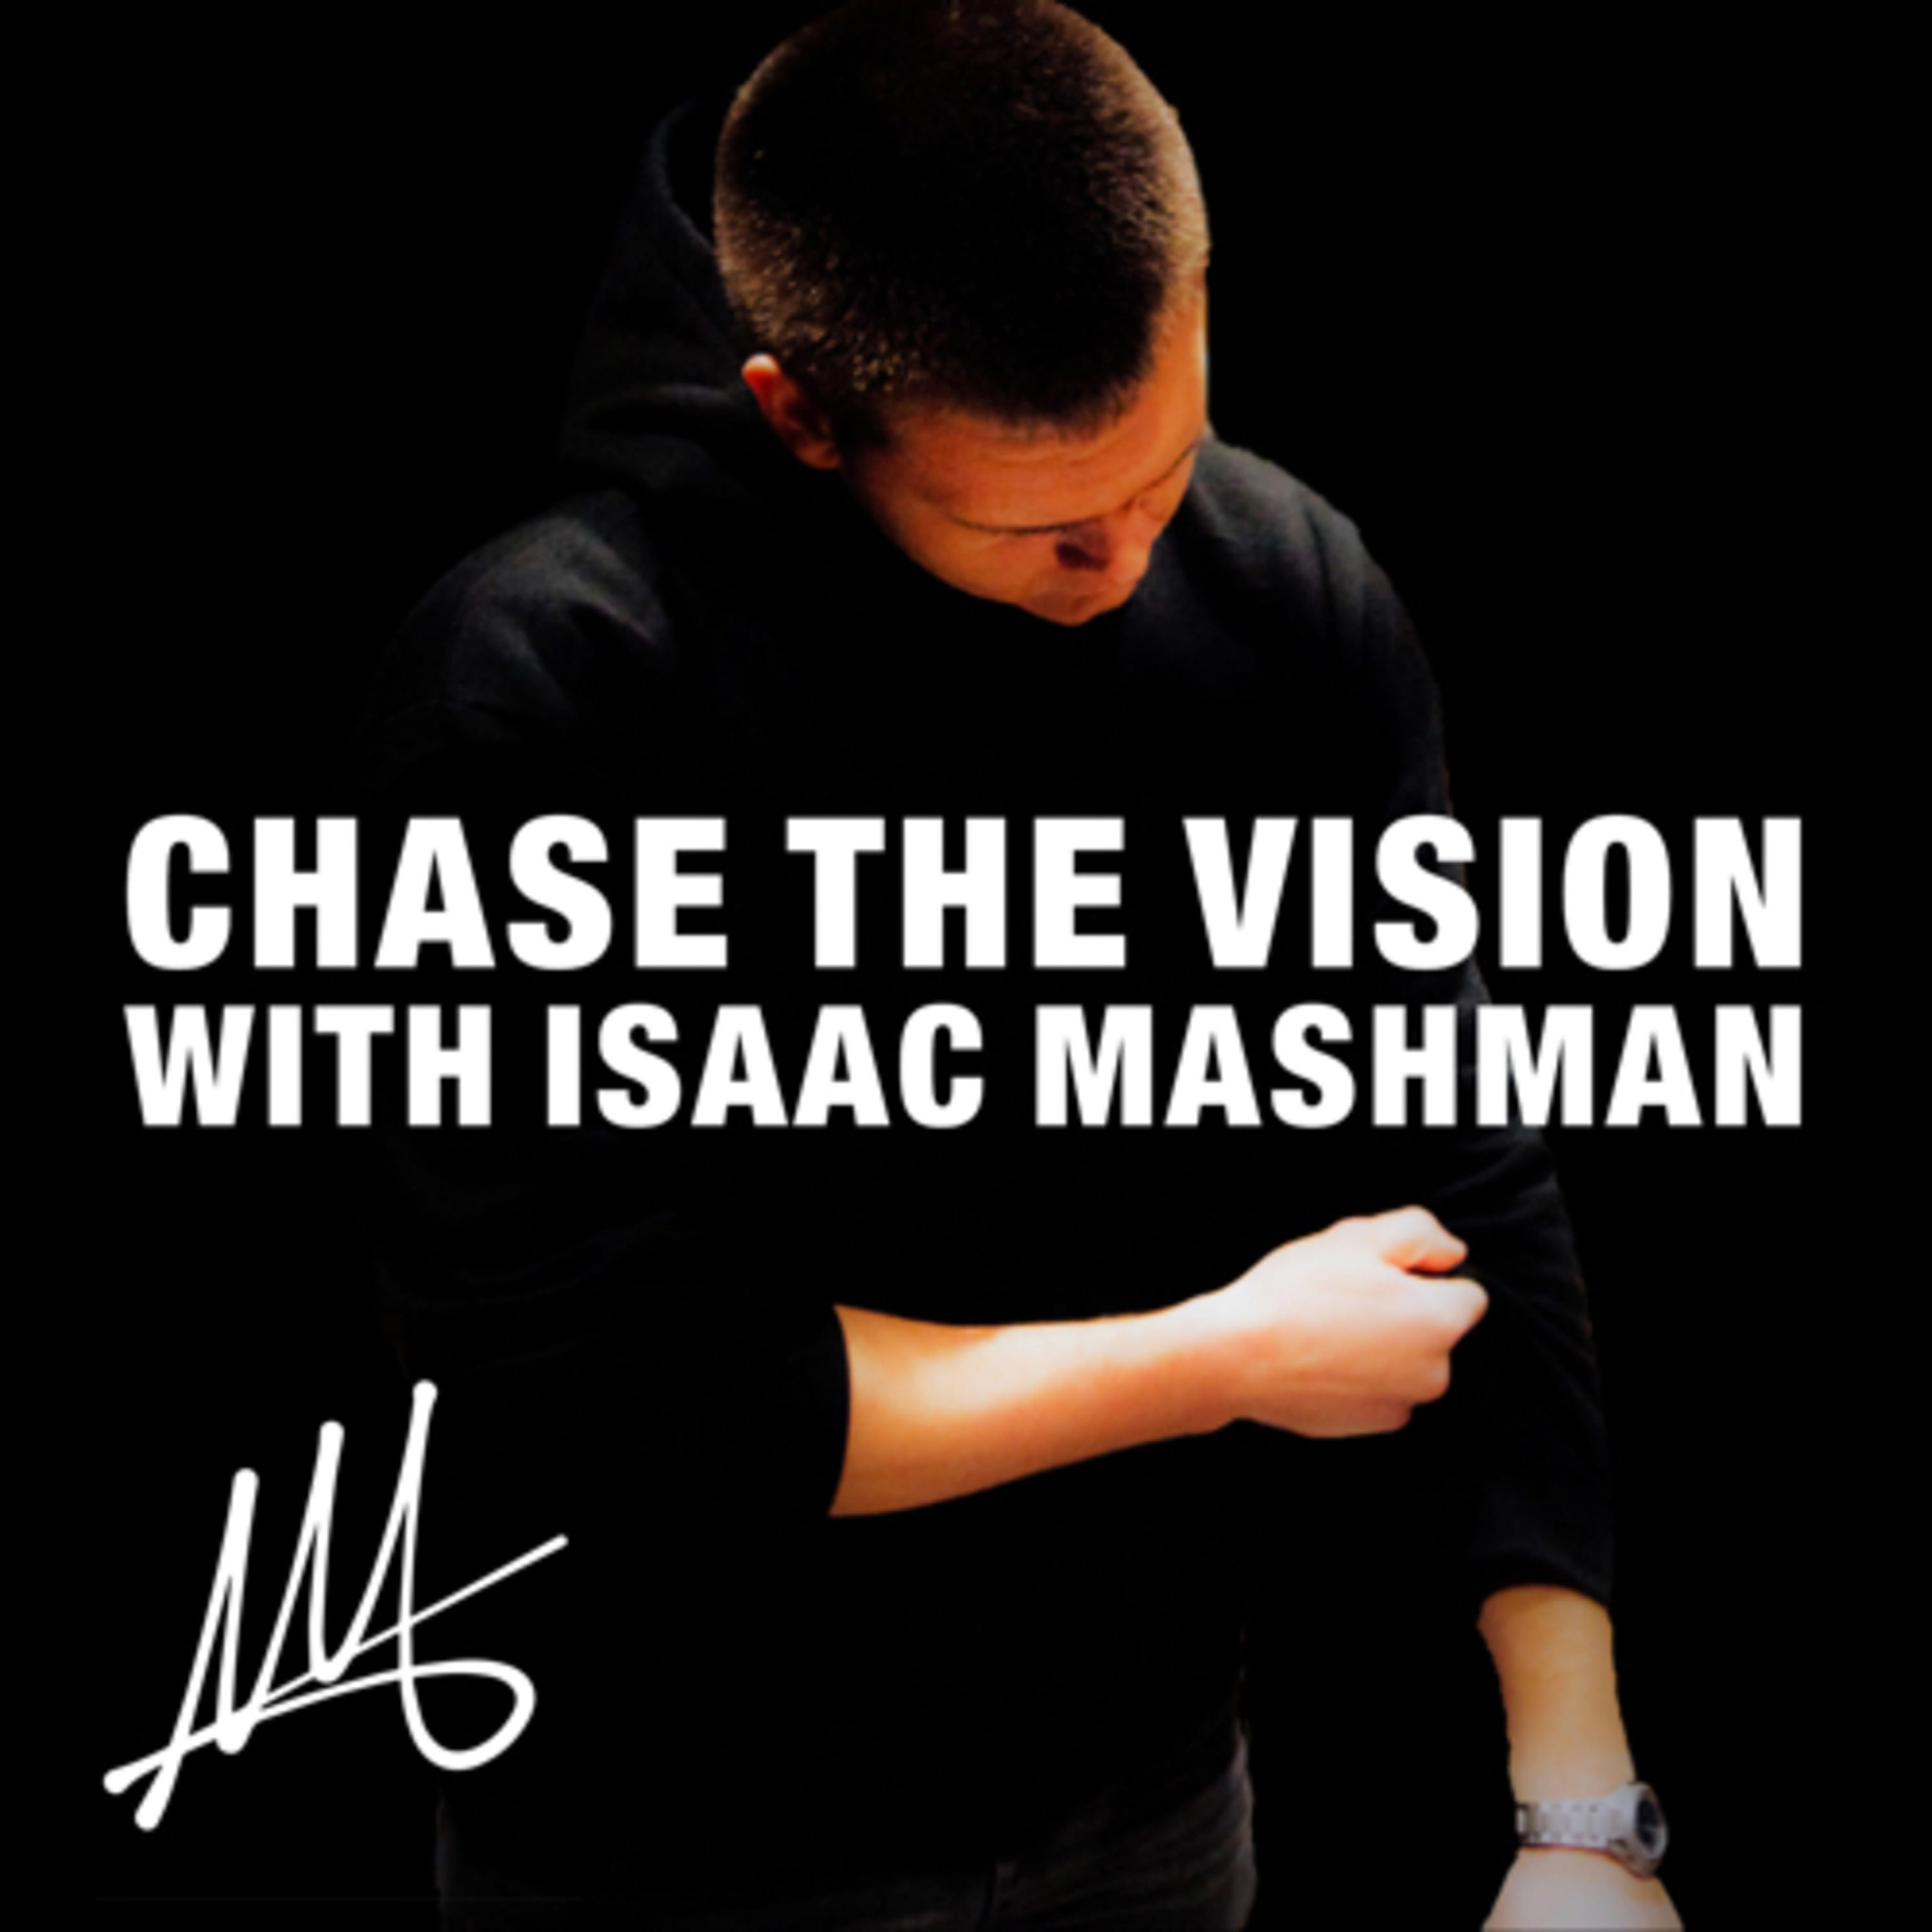 Chase the Vision with Isaac Mashman